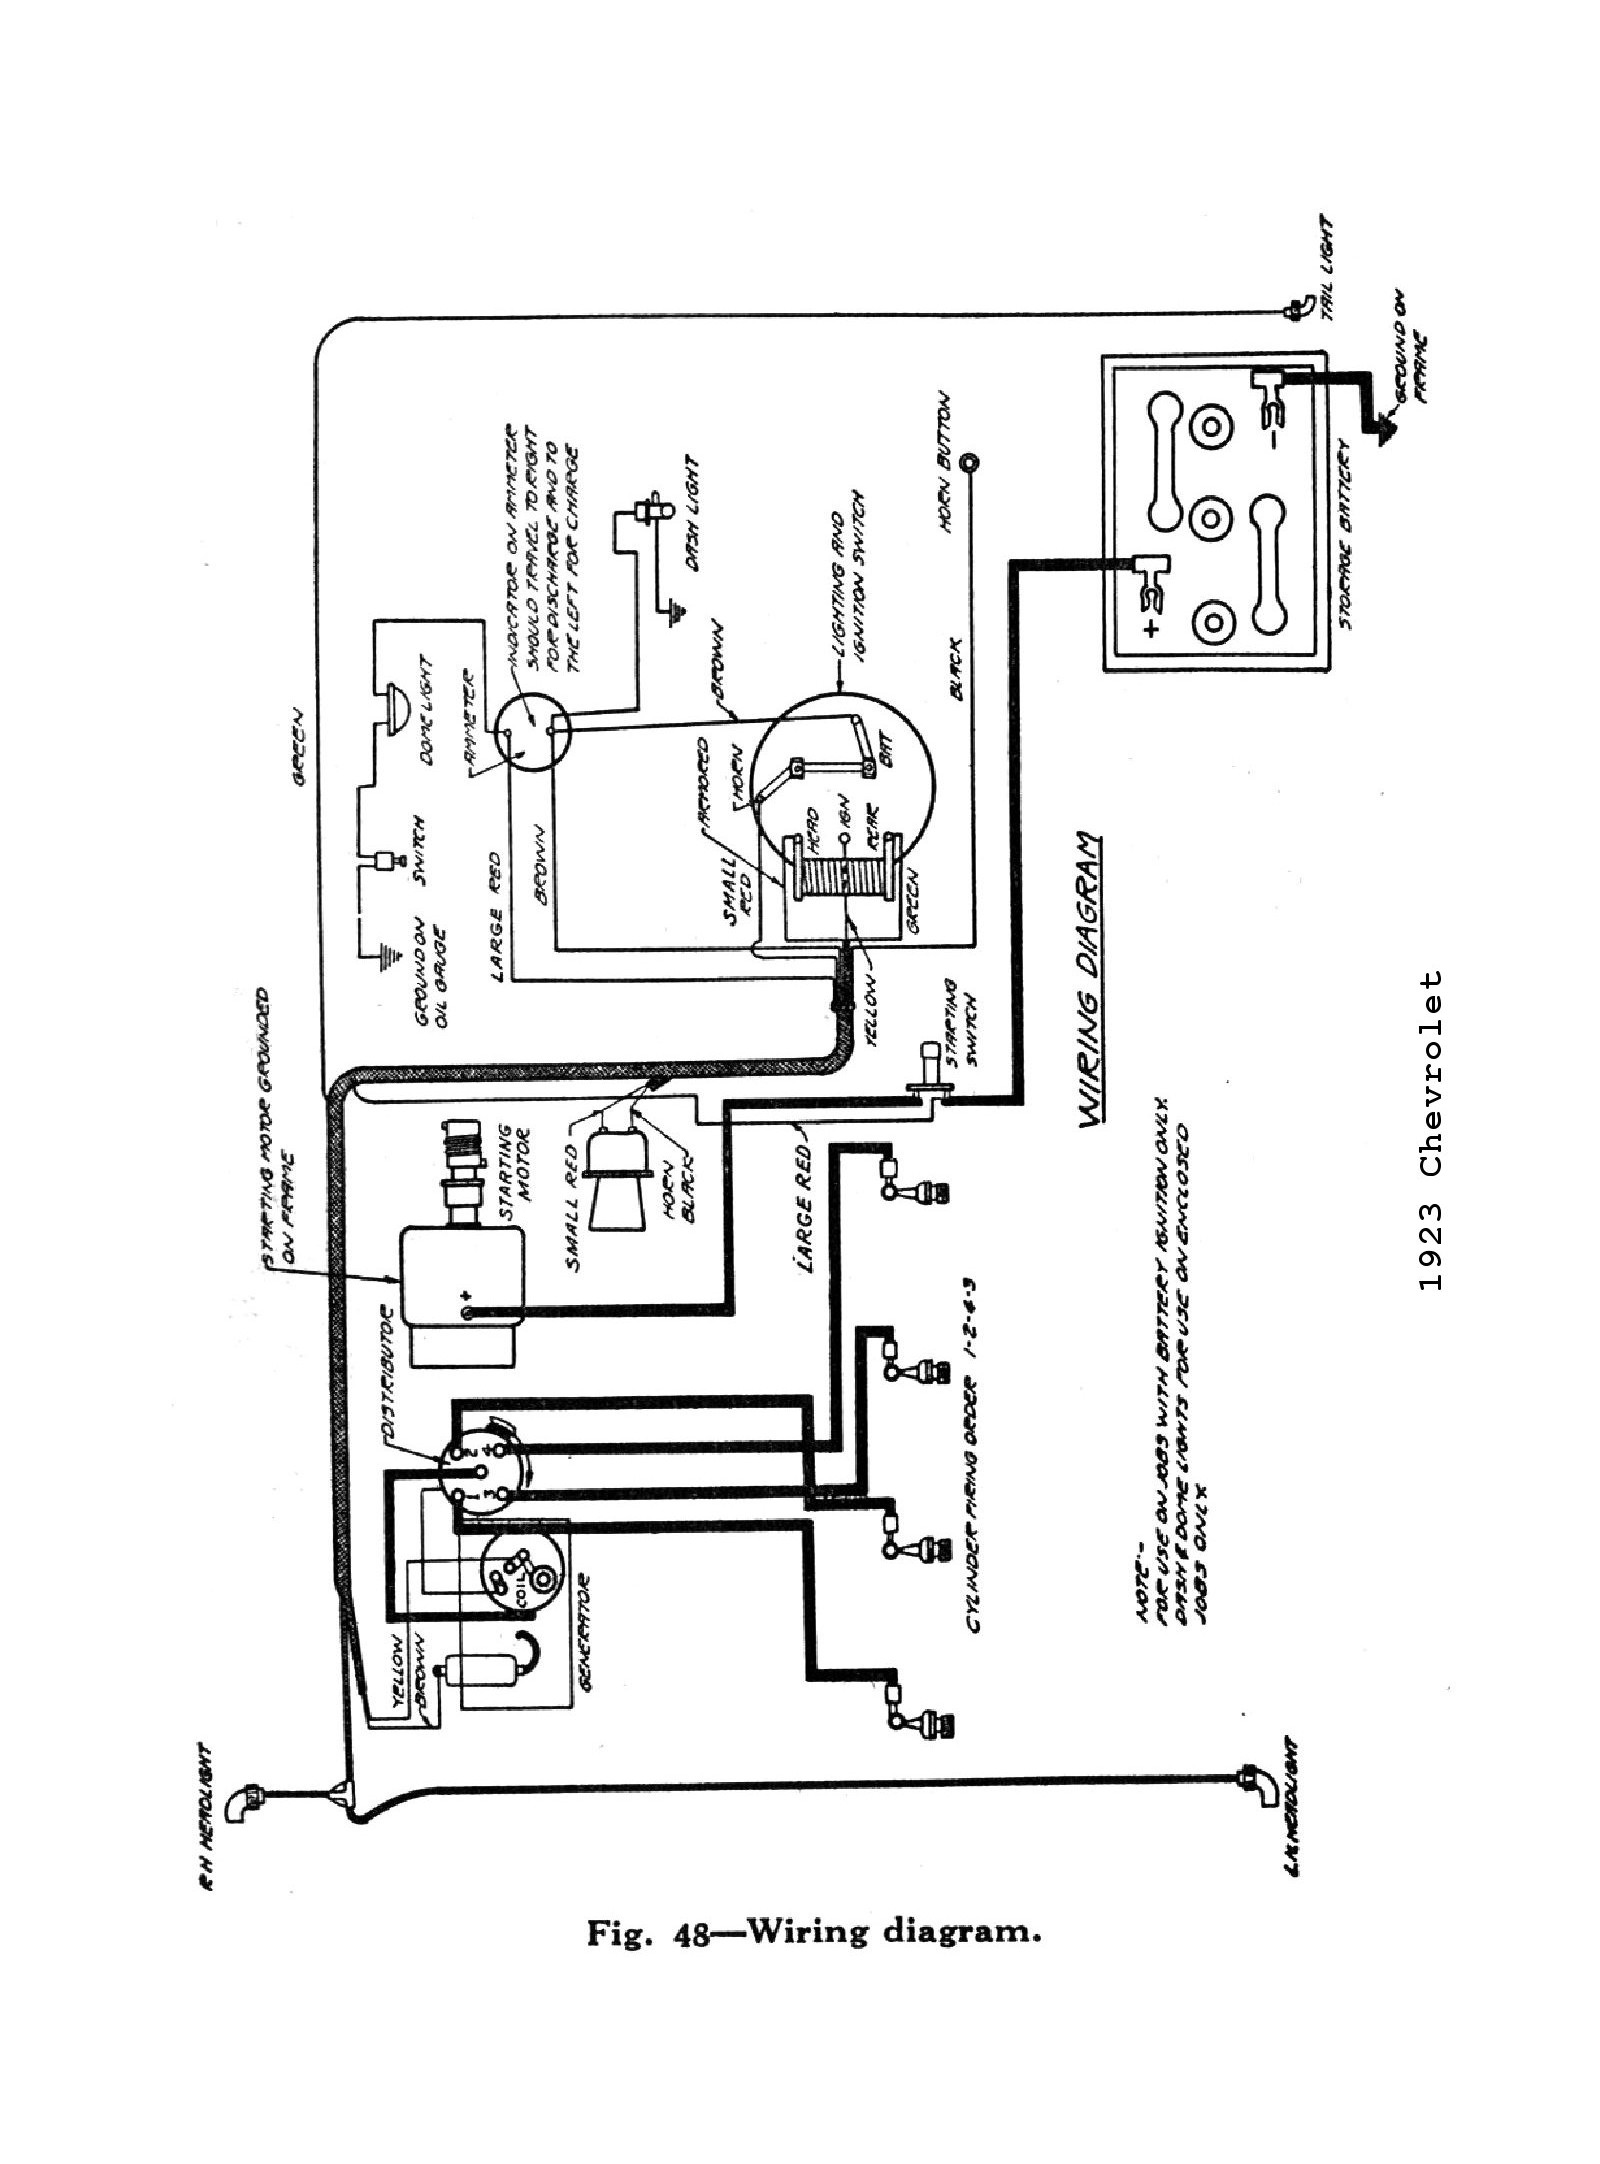 23model 1930 chevrolet wiring diagram detailed schematics diagram